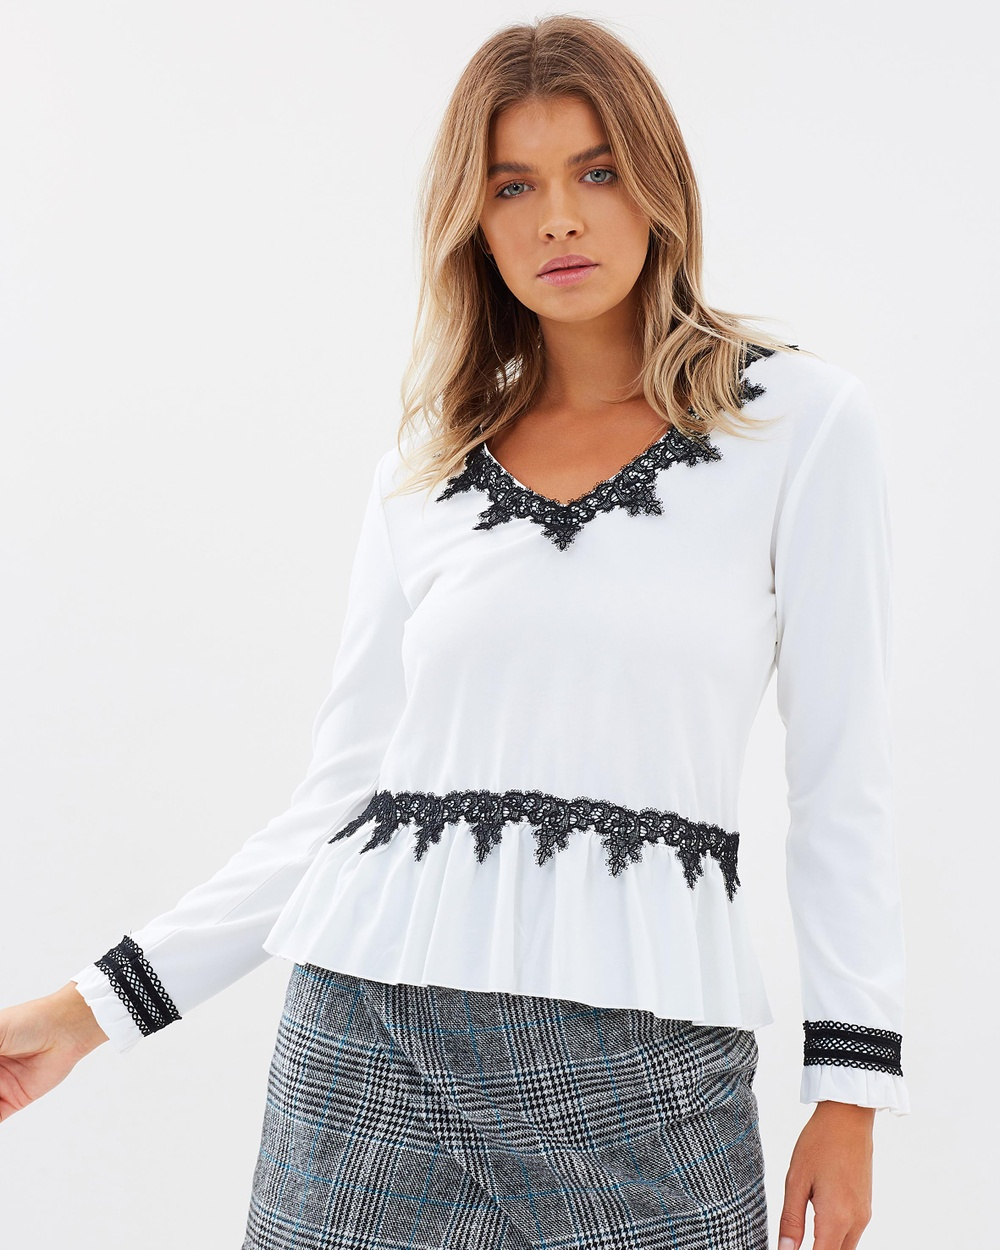 Atmos & Here ICONIC EXCLUSIVE Rosaline Lace Contrast Top Tops Off-White ICONIC EXCLUSIVE Rosaline Lace Contrast Top